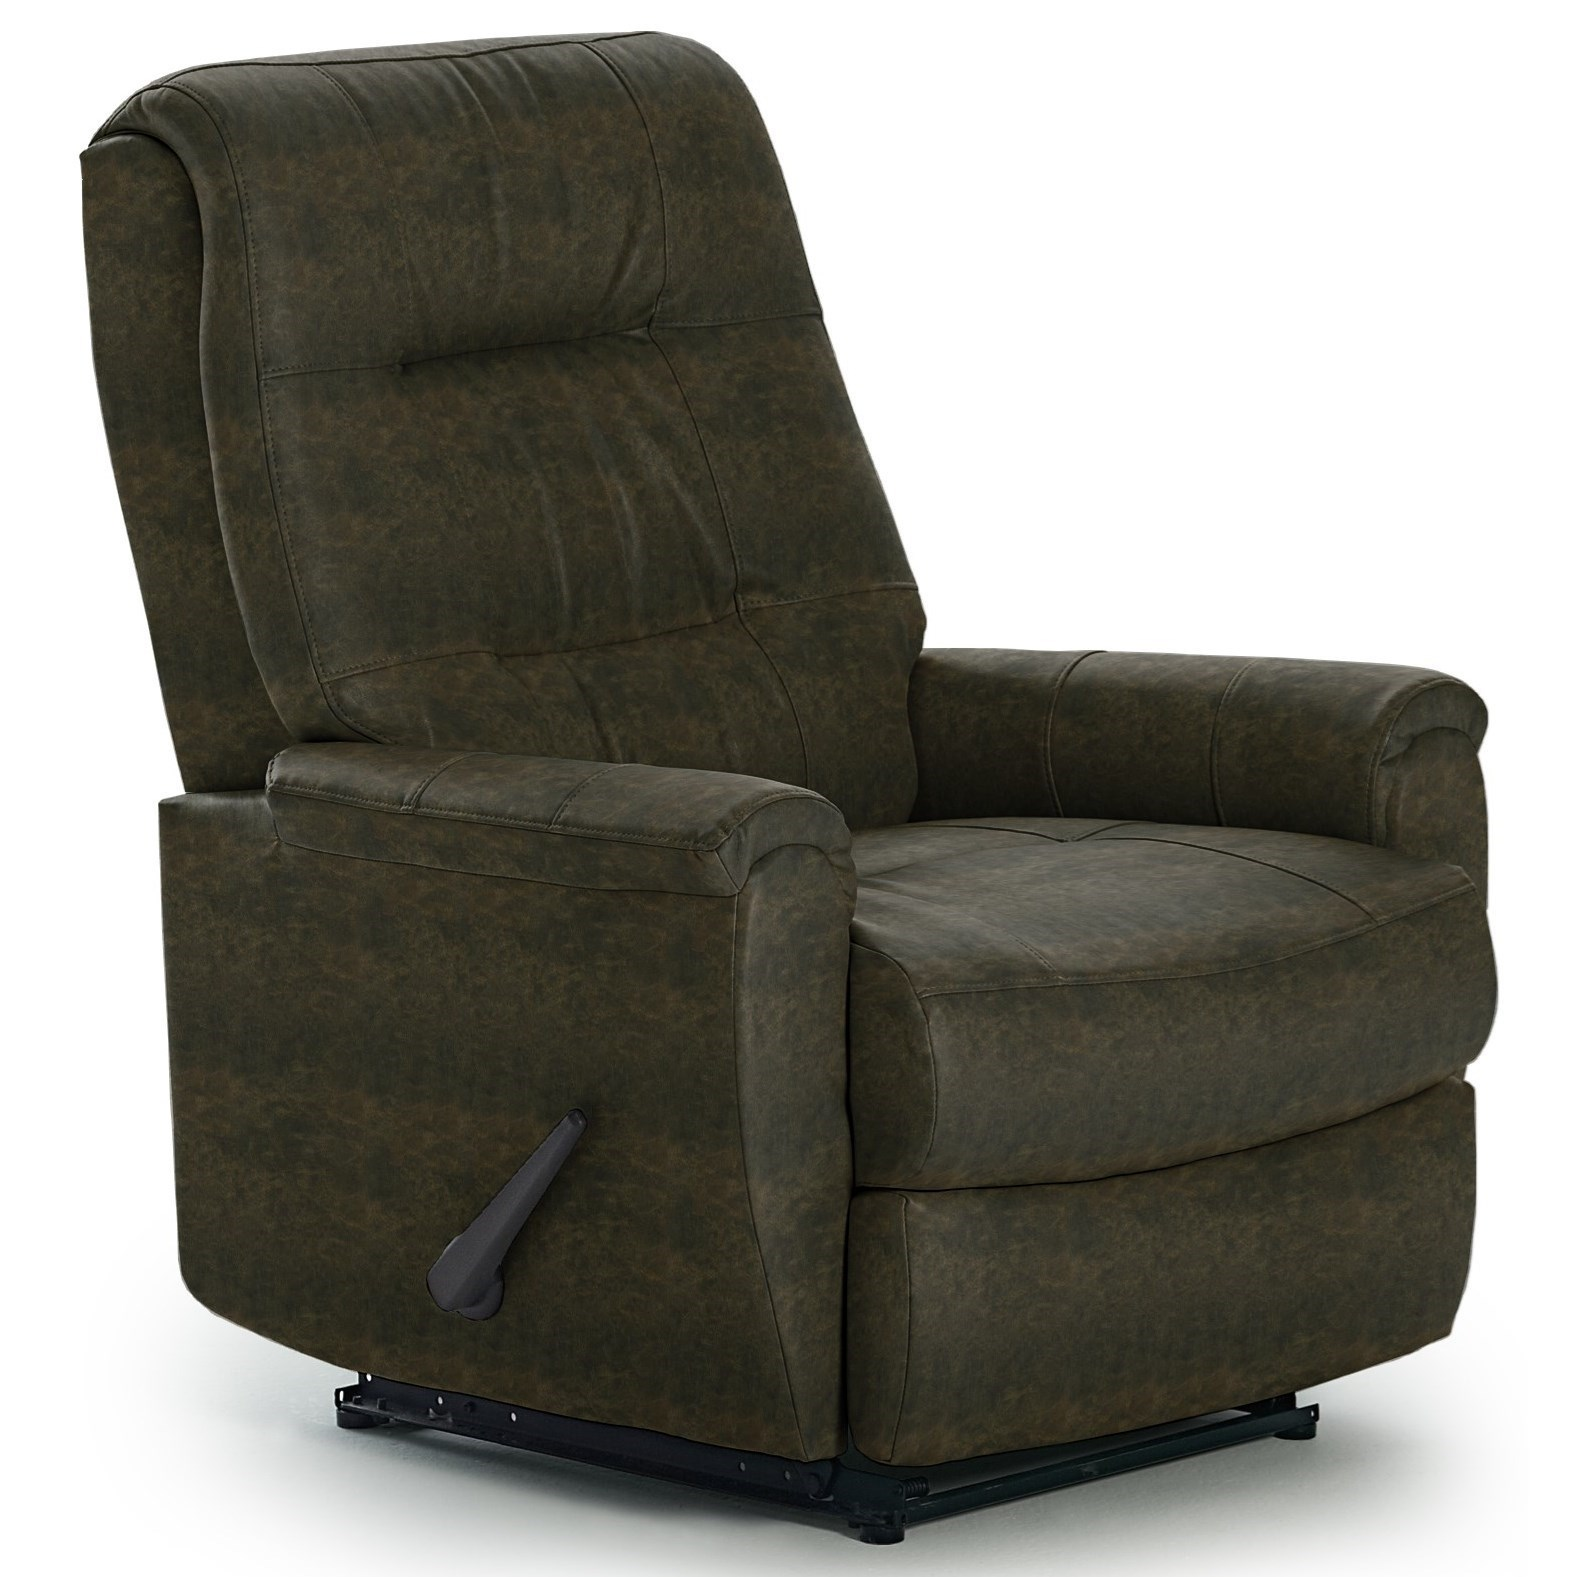 Best Home Furnishings Recliners - Petite Rocker Recliner - Item Number: -2083364182-24783U